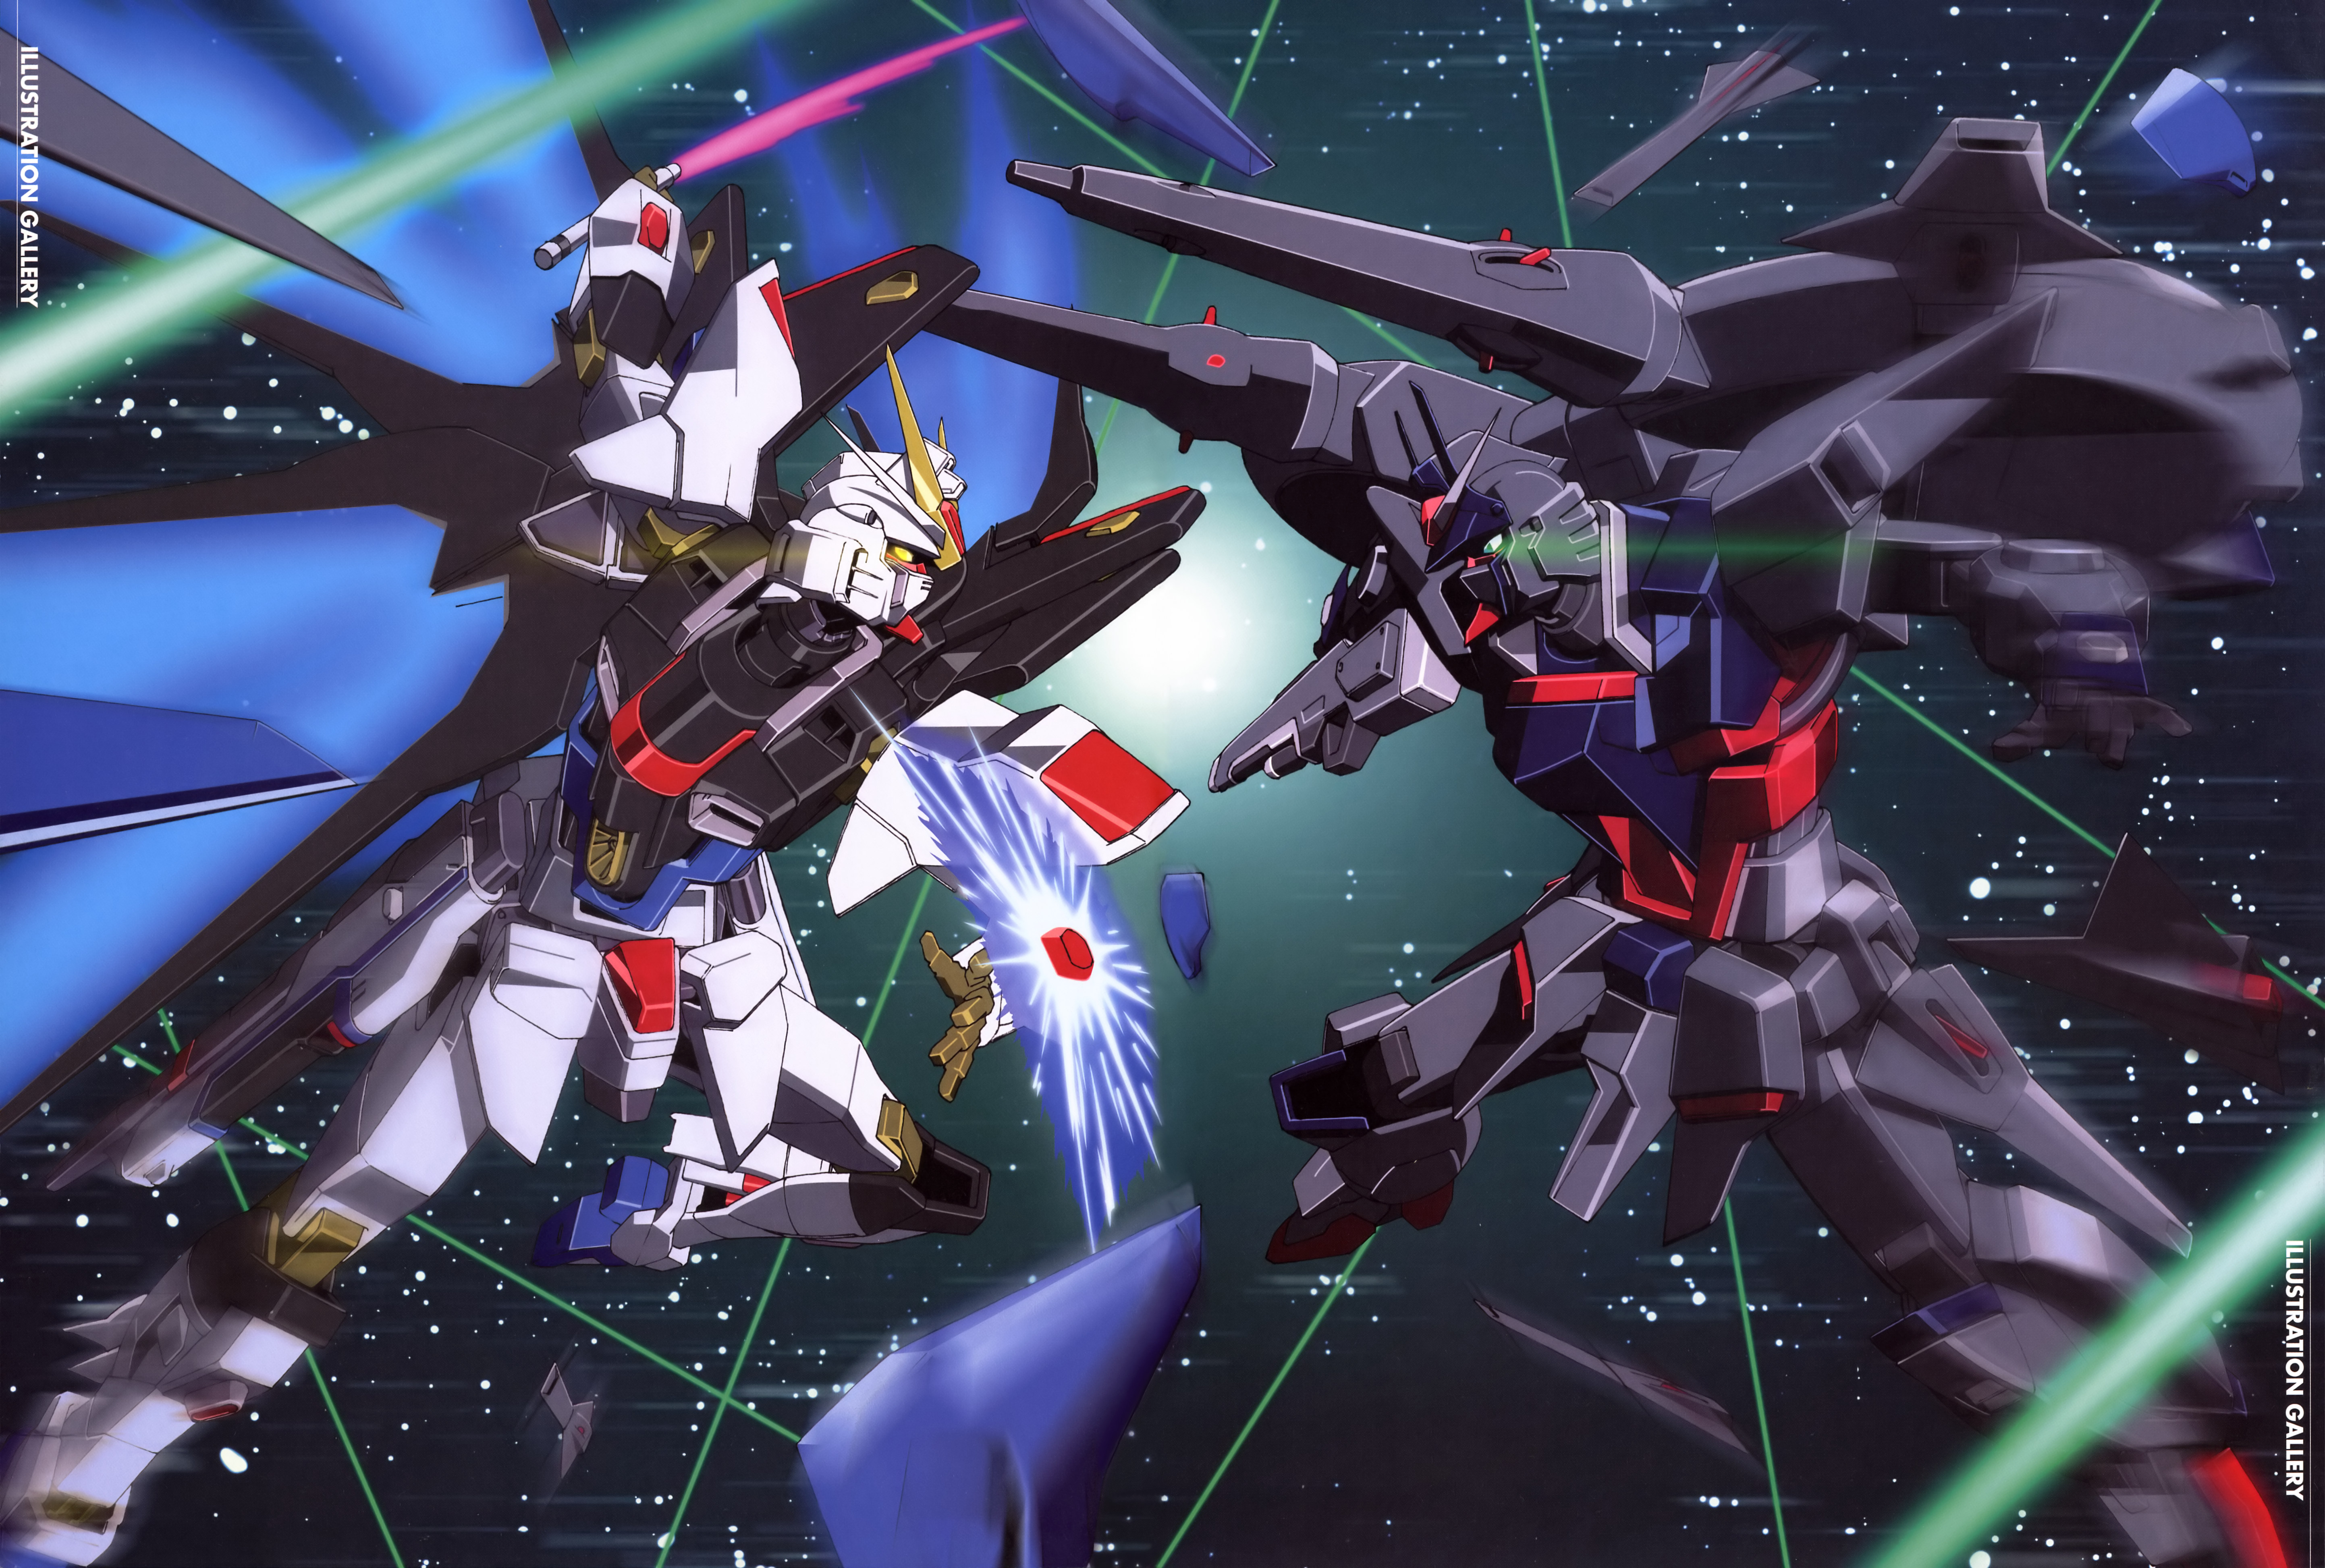 5770x3892 - Mobile Suit Gundam Seed Destiny Wallpapers 2